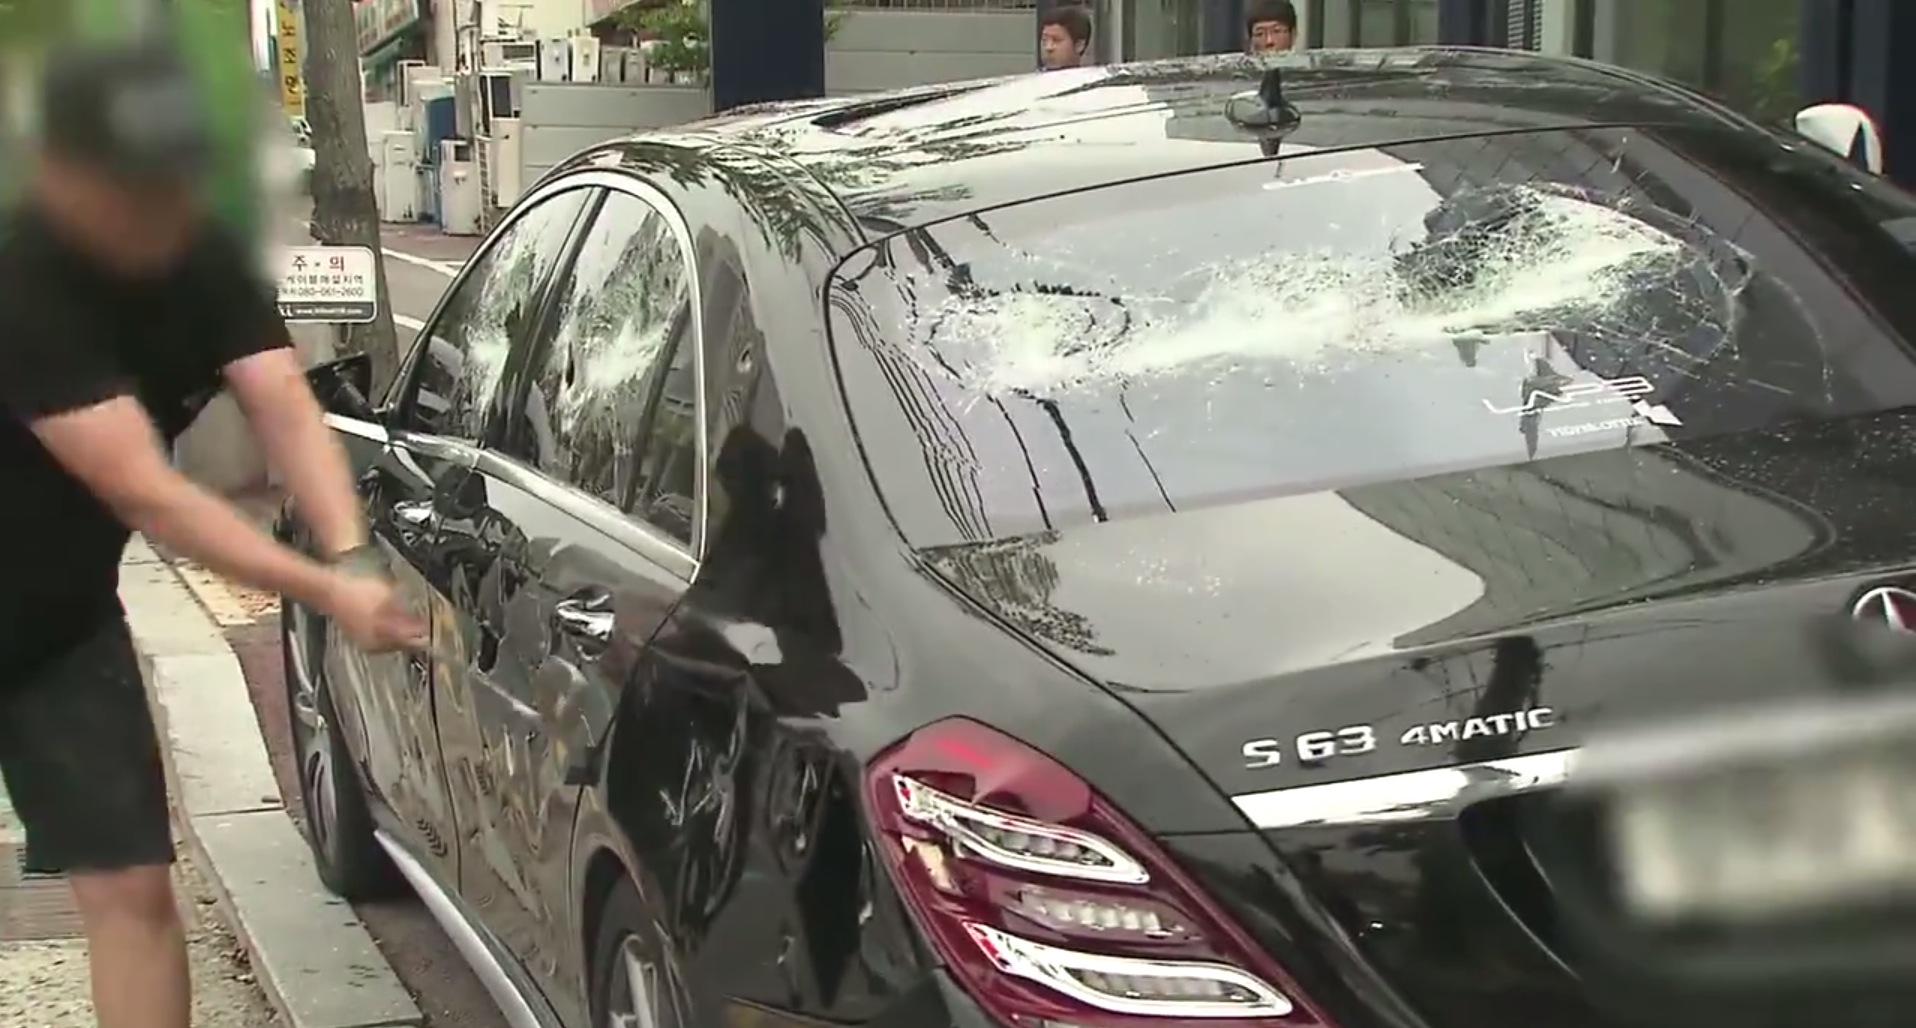 Video - Frustrated with poor service man destroys his $200k Mercedes S63 AMG with a golf club : Luxurylaunches